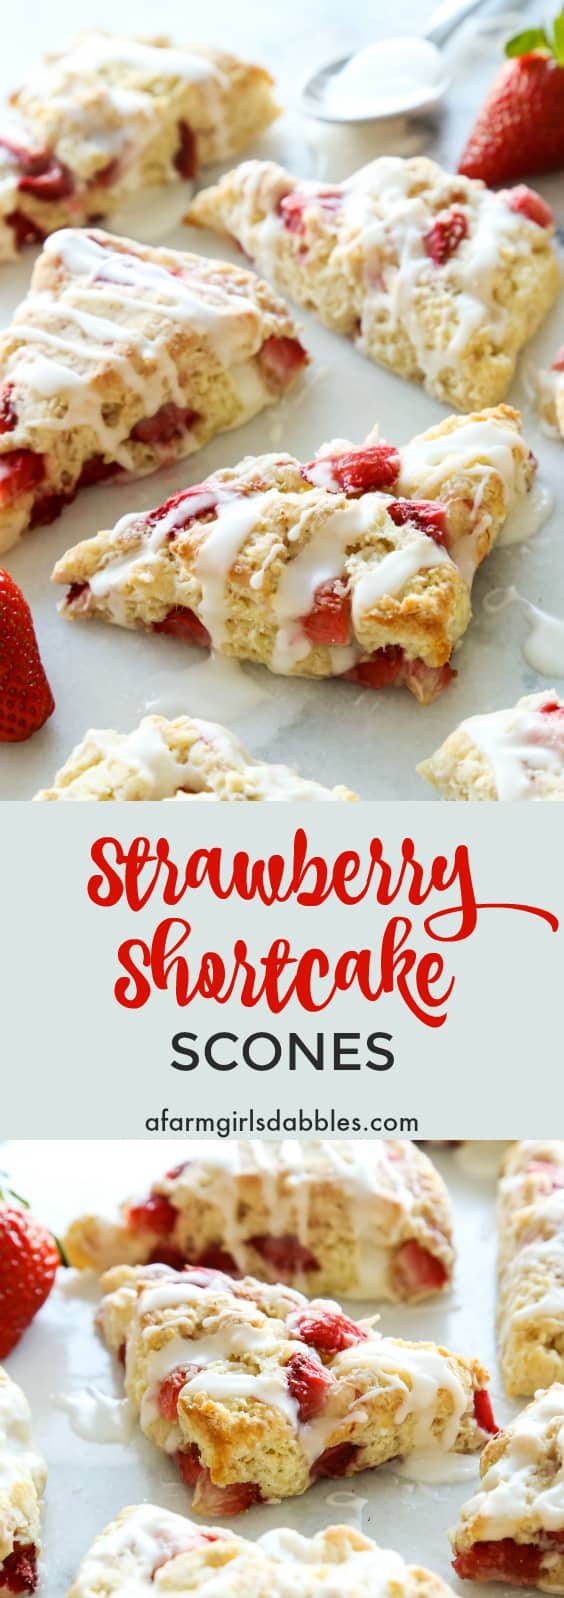 Strawberry Shortcake Scones from afarmgirlsdabbles.com - buttery, golden scones studded with juicy strawberries and drizzled with a vanilla cream glaze